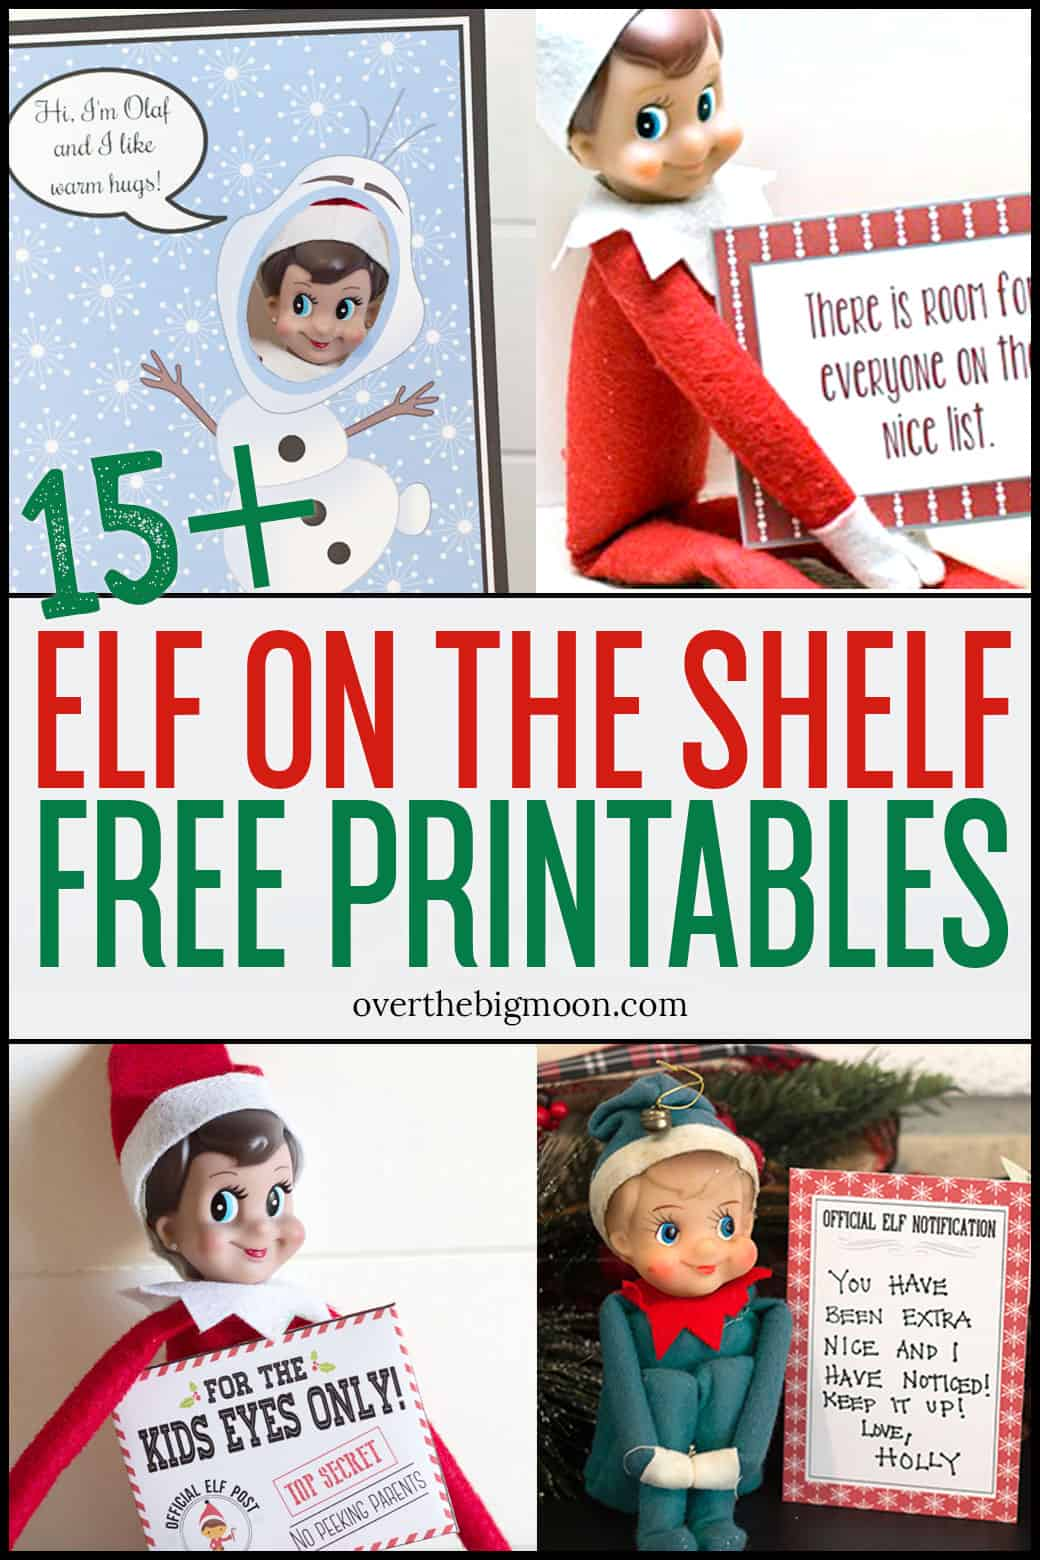 photograph relating to Elf Printable called Elf upon the Shelf Printables Tips About The Massive Moon